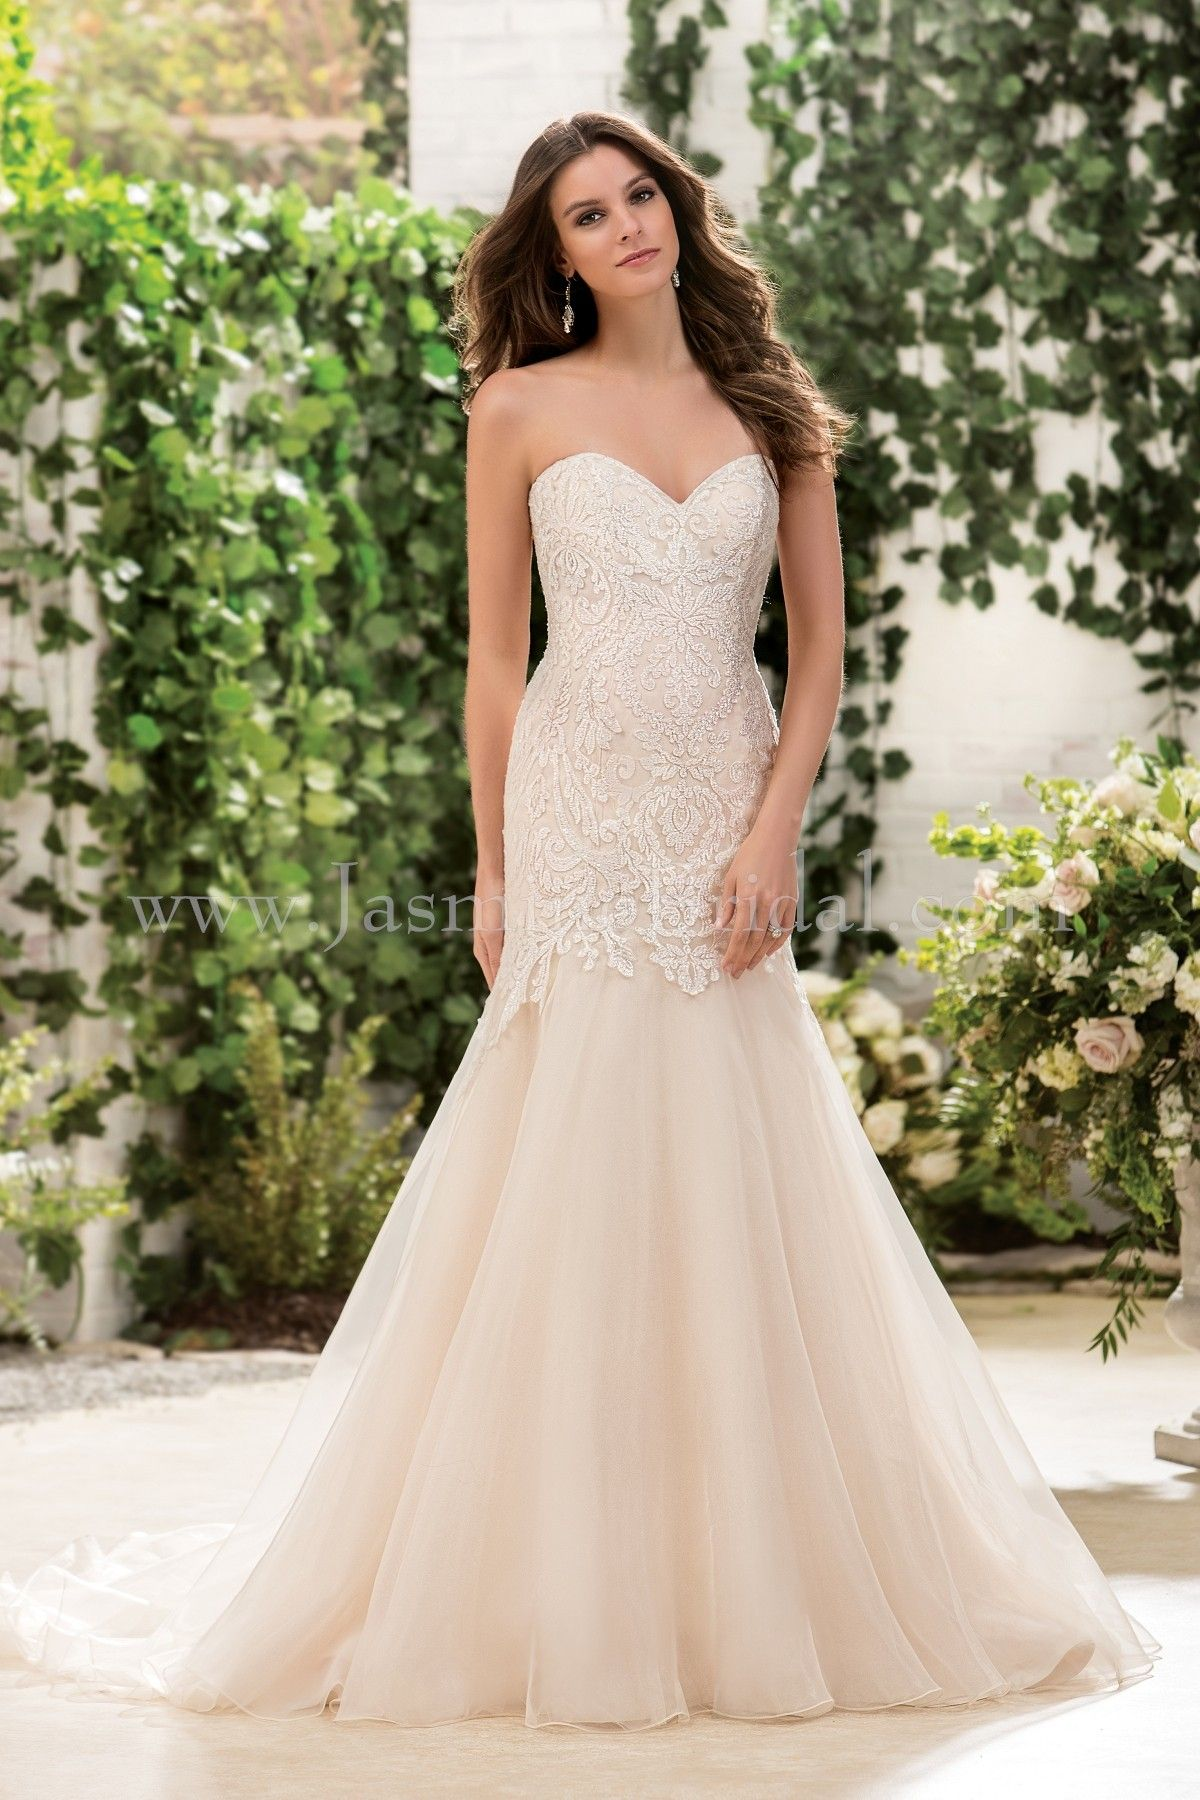 Jasmine Bridal Collection Style F181062 In Ivory Vintage